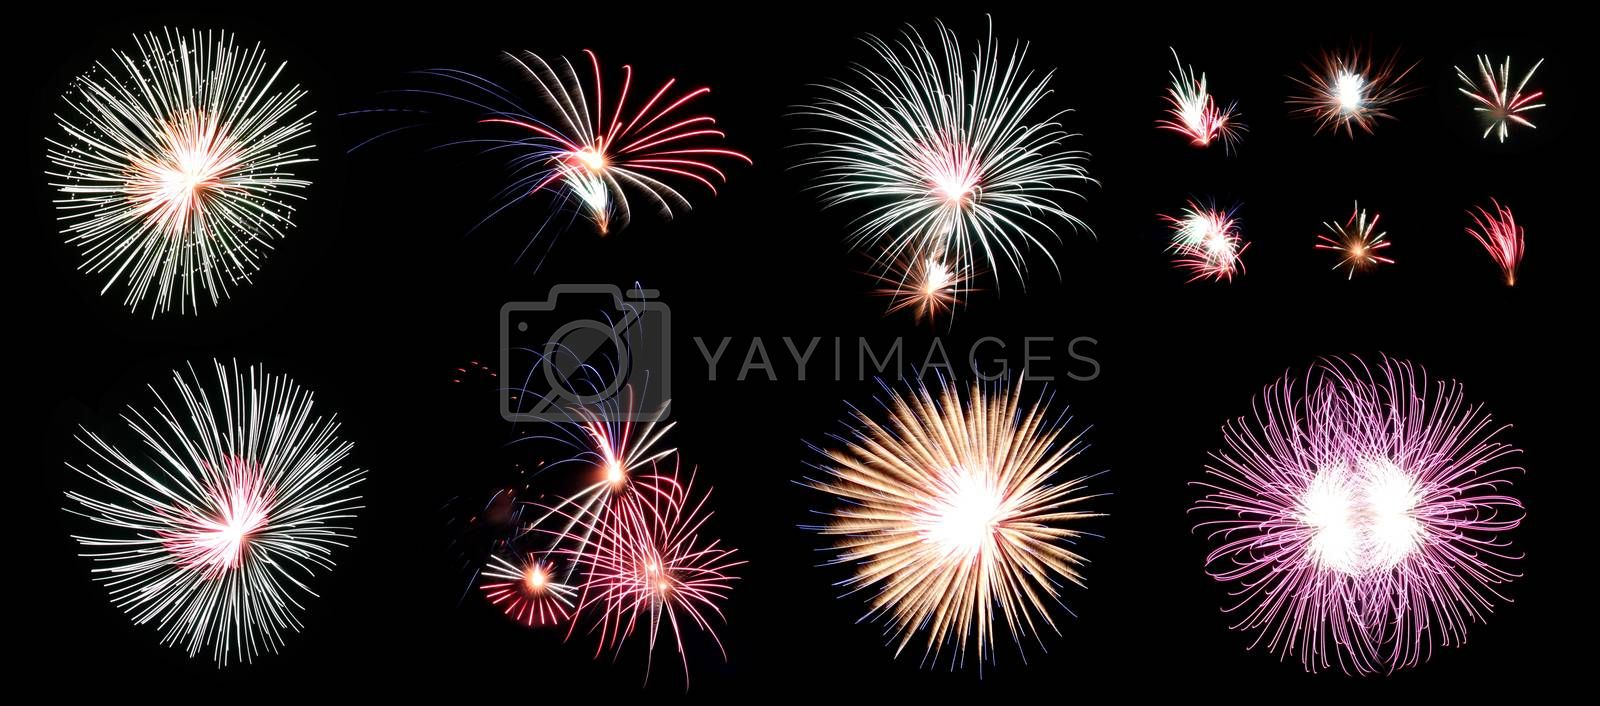 The Picture Mix Fireworks or firecracker in the darkness Frame.